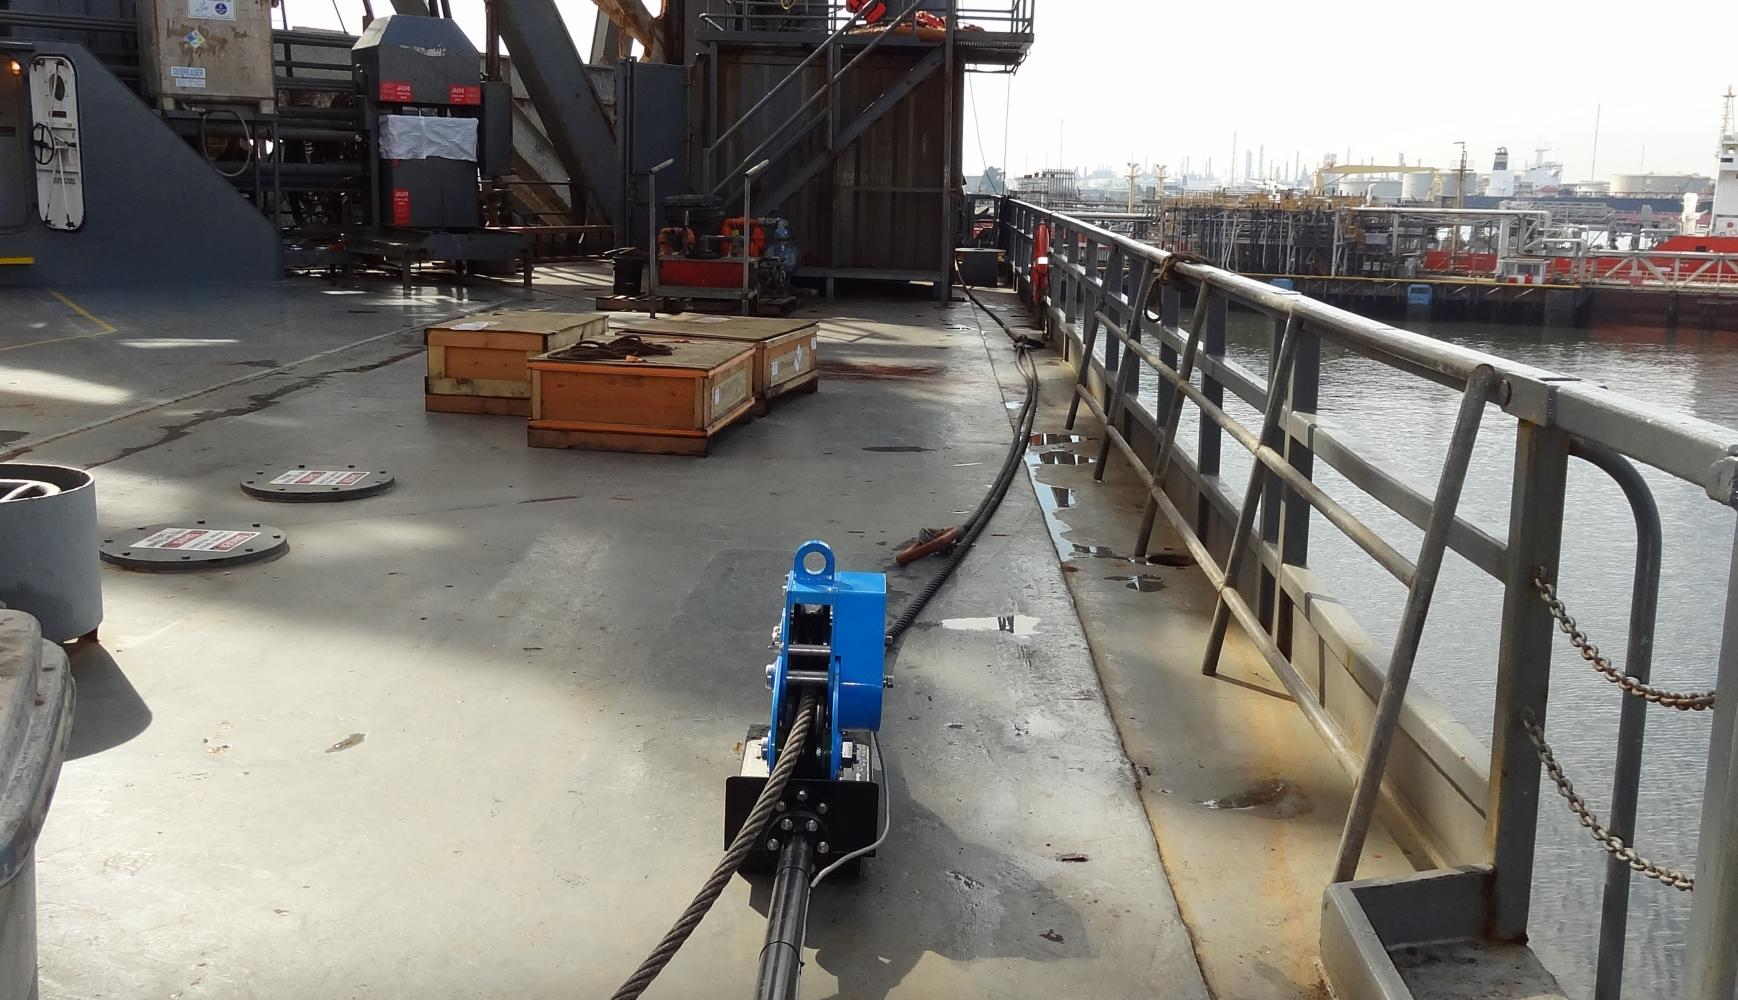 RL20 in Position, offshore mooring, cable tension, monitoring